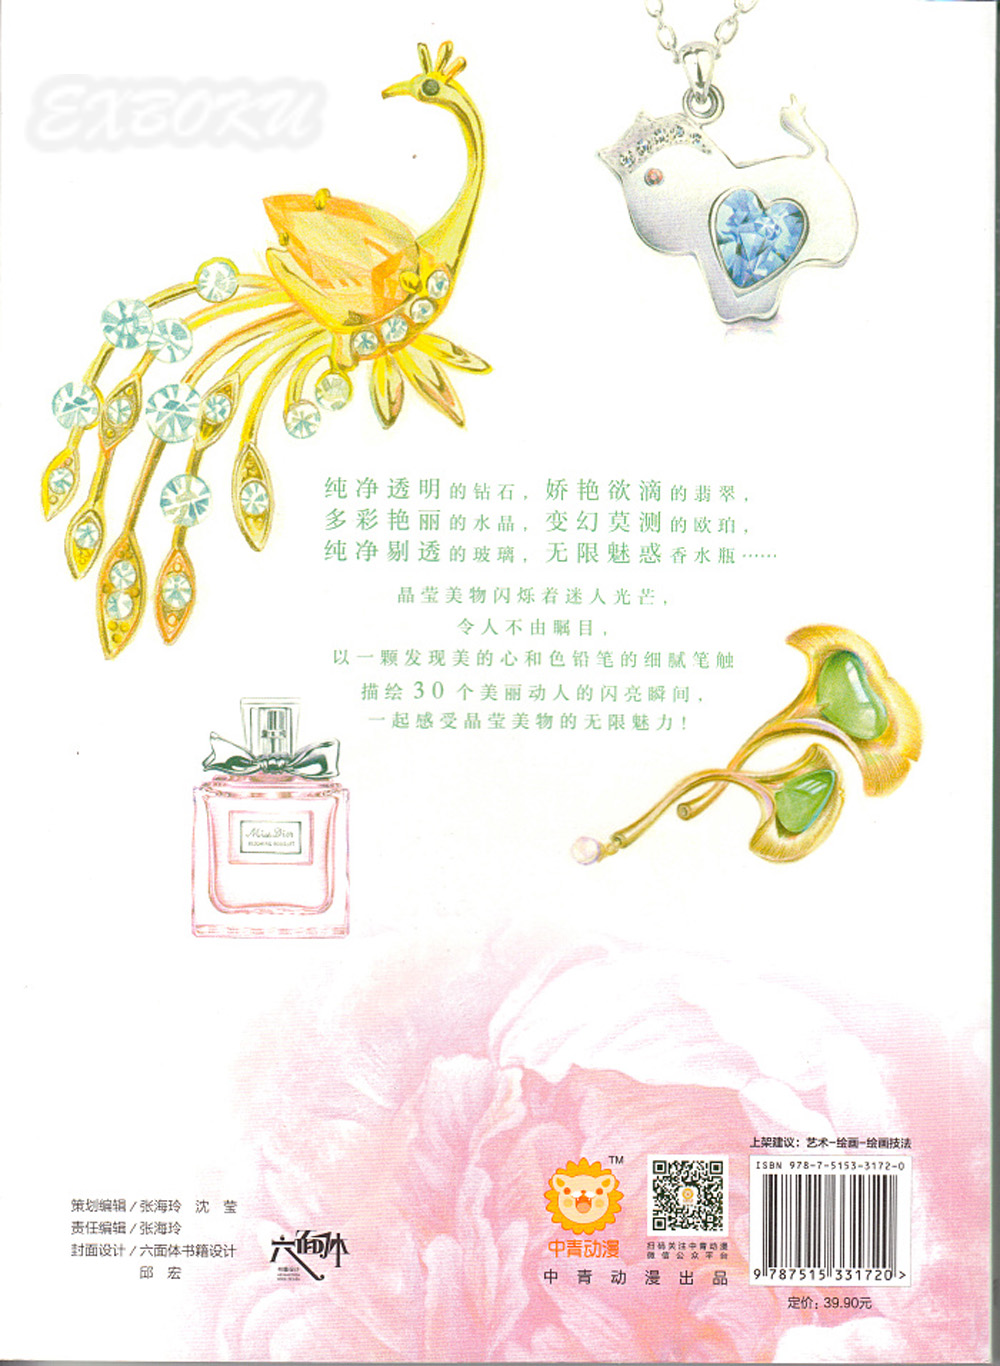 Image 4 - Chinese Colored Pencil Crystal Jewelry Necklace Painting Art Drawing Book-in Books from Office & School Supplies